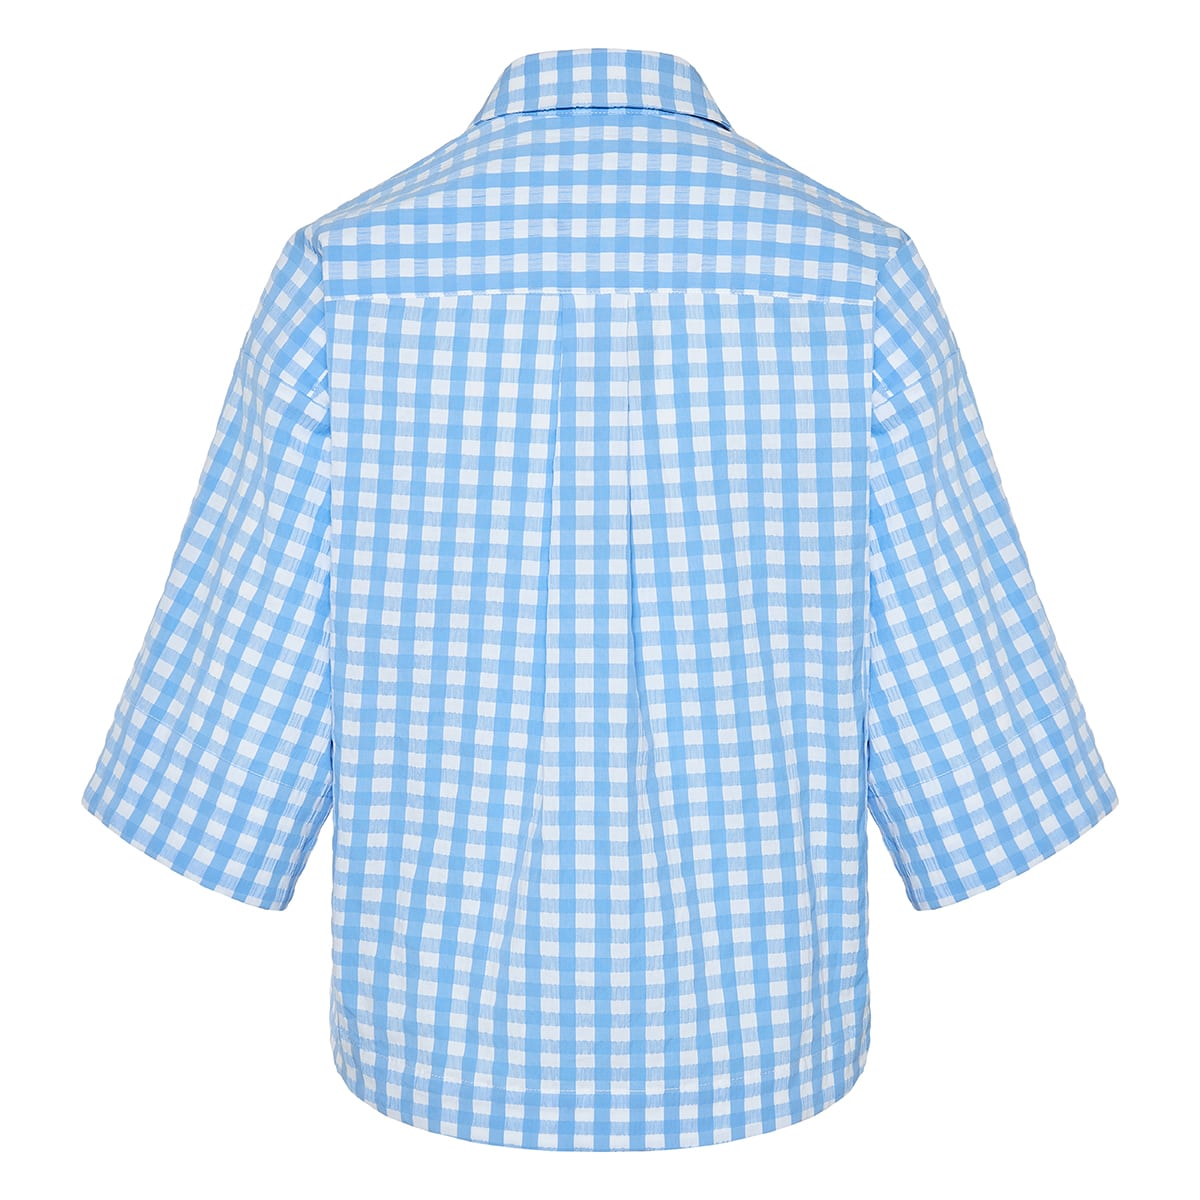 Nico gingham cotton shirt